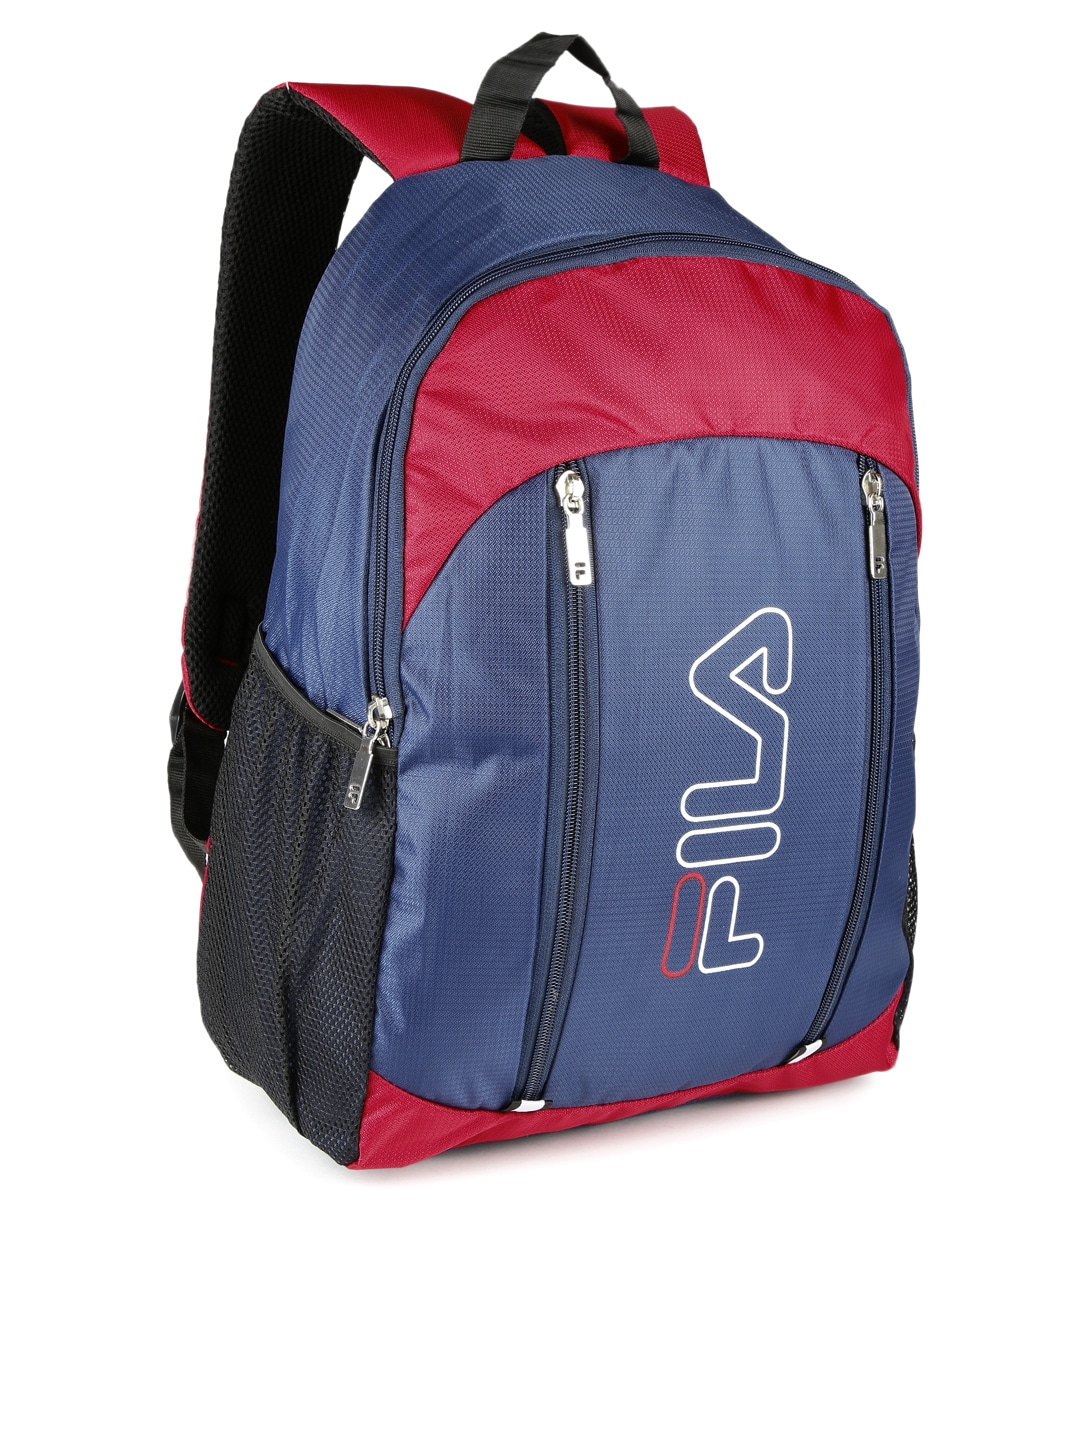 Fila Bags - Buy Fila Bags For Men Online in India at Myntra 6476469f7ced8